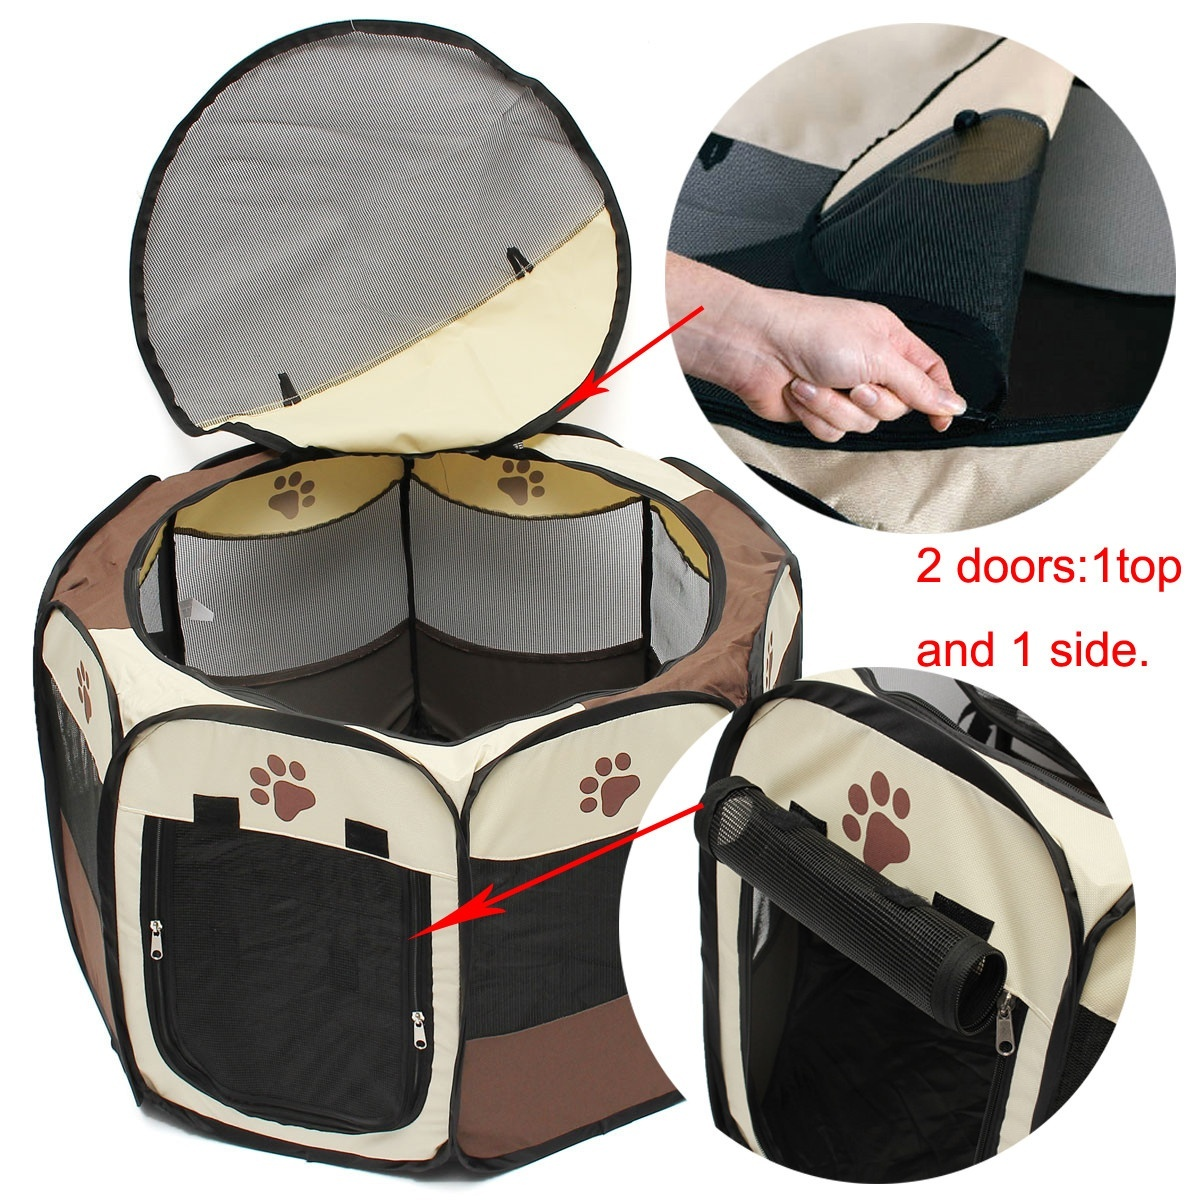 Foldable Dog Puppy Pet Soft Playpen Exercise Tent Cage Fence Crate Kennel